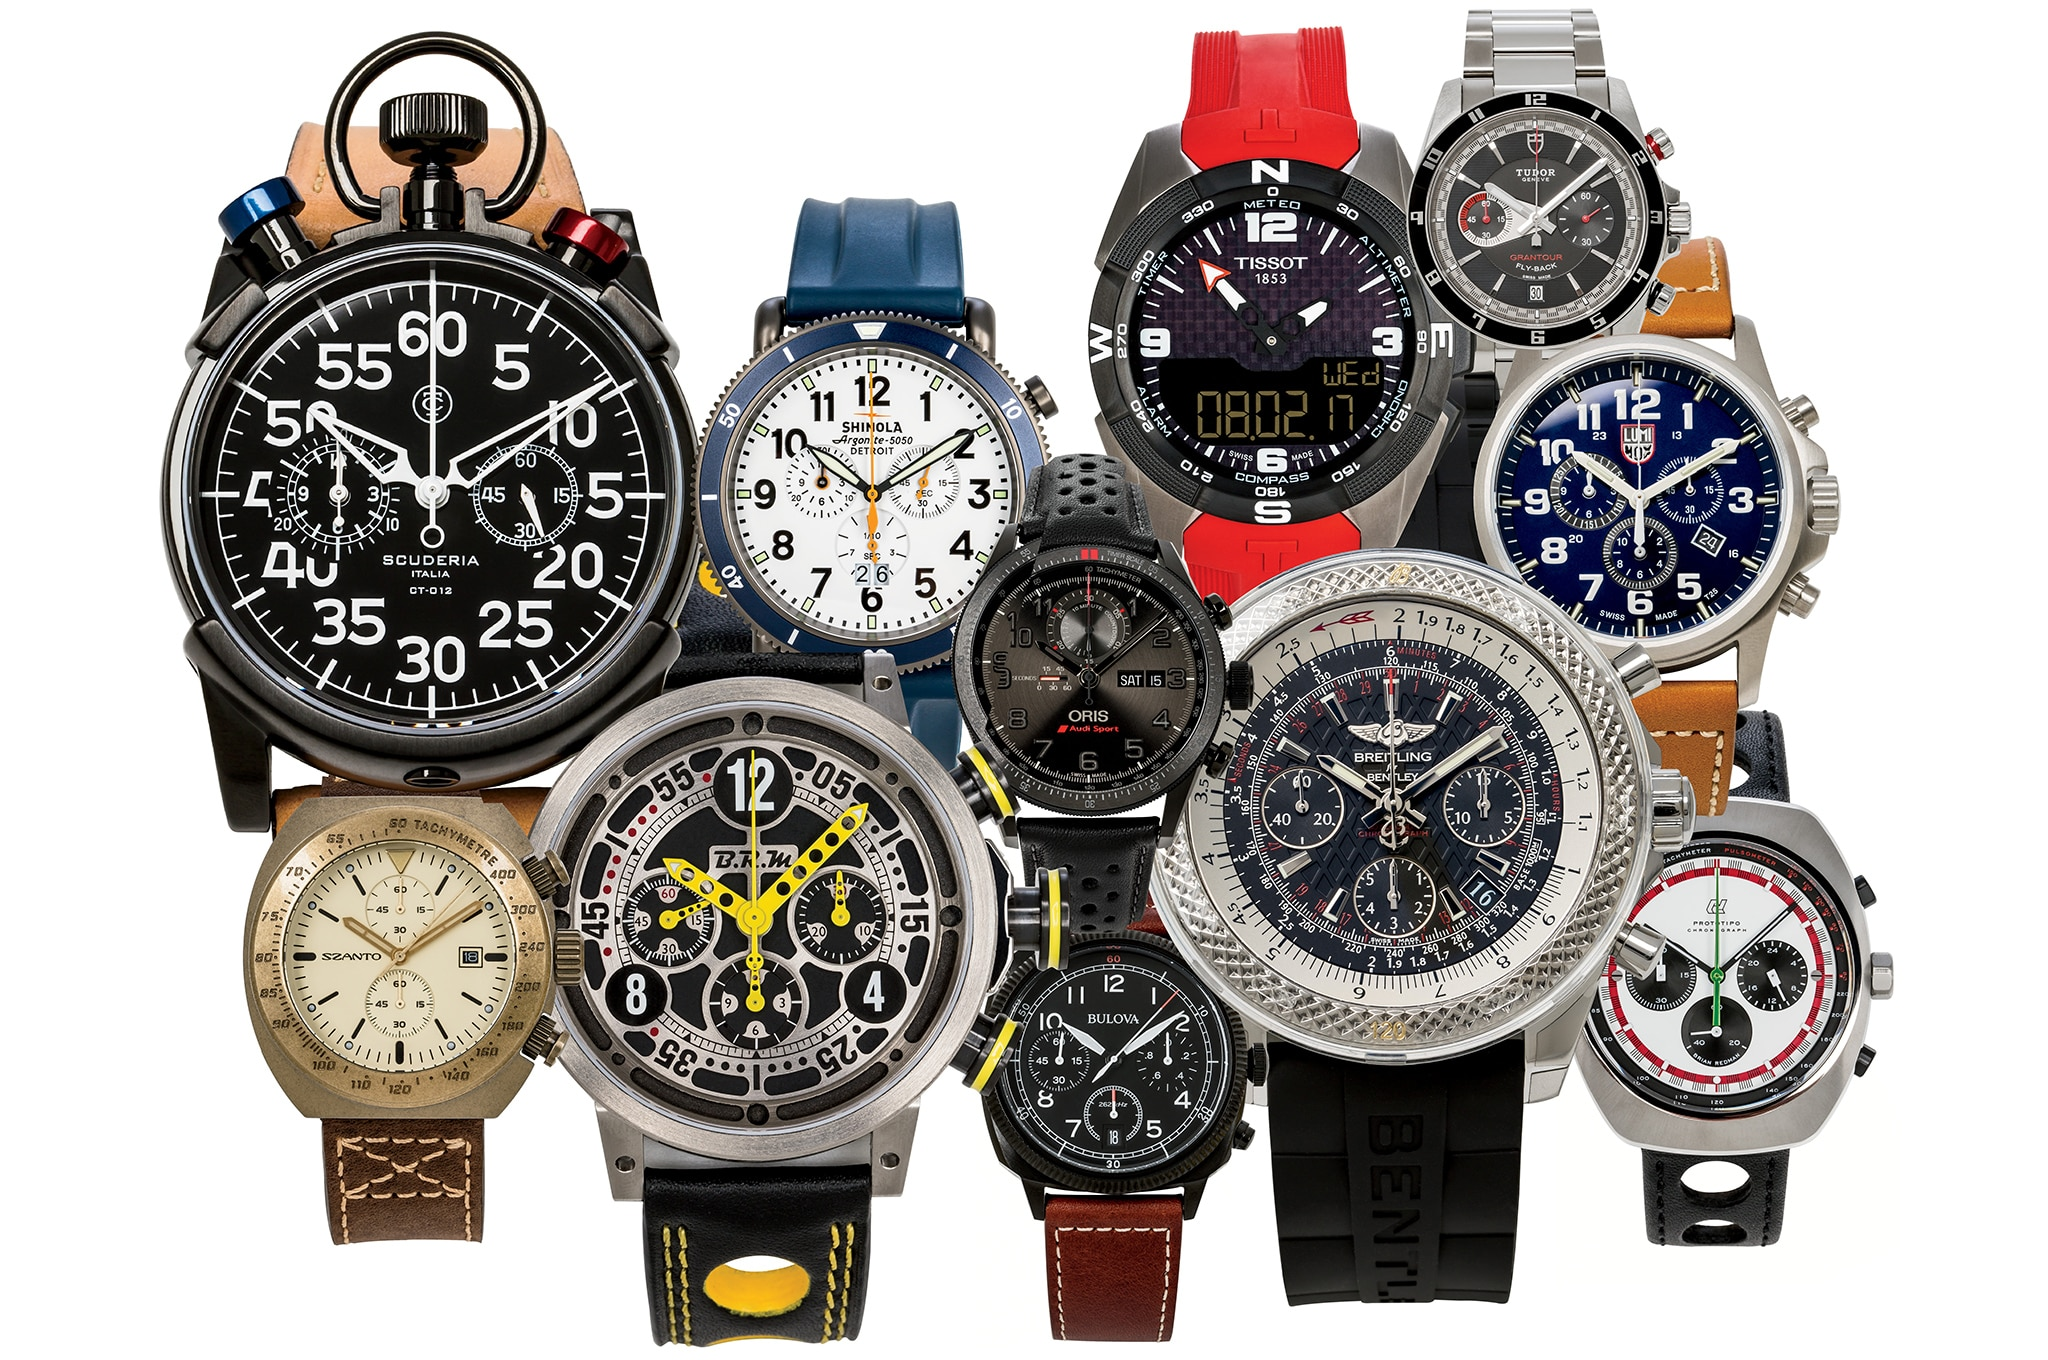 https://i1.wp.com/st.automobilemag.com/uploads/sites/11/2015/12/Watches-Ignition-January-2016-lead.jpg